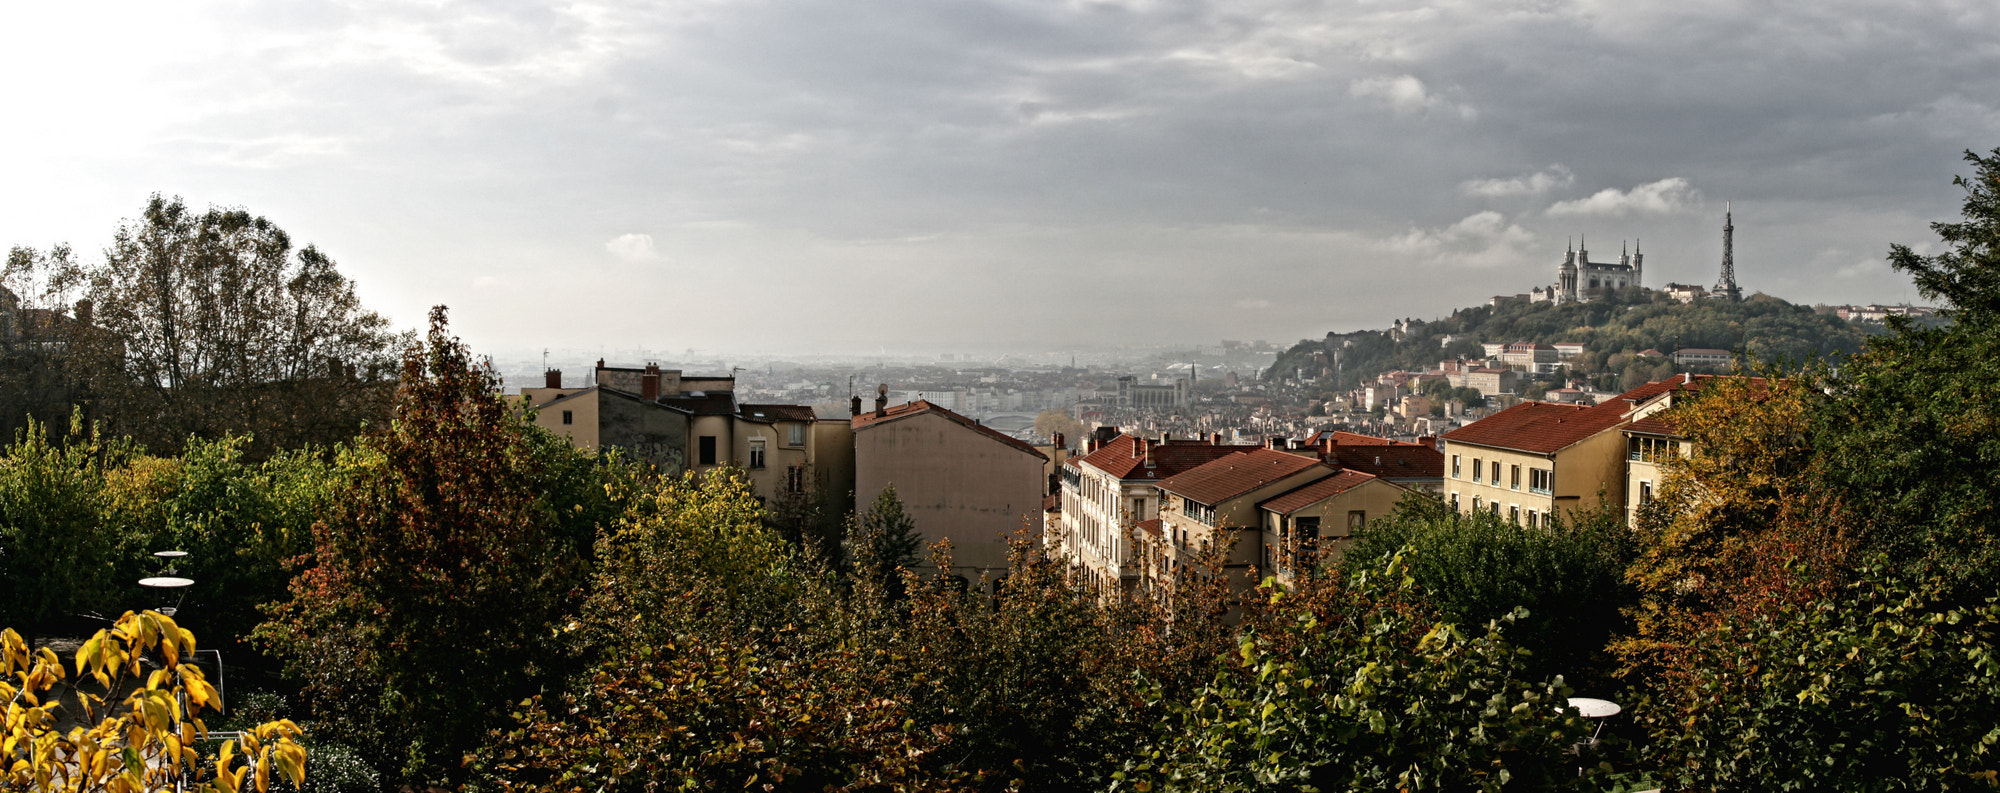 Photograph Lyon from La Croix-Rousse by Arnaud  on 500px